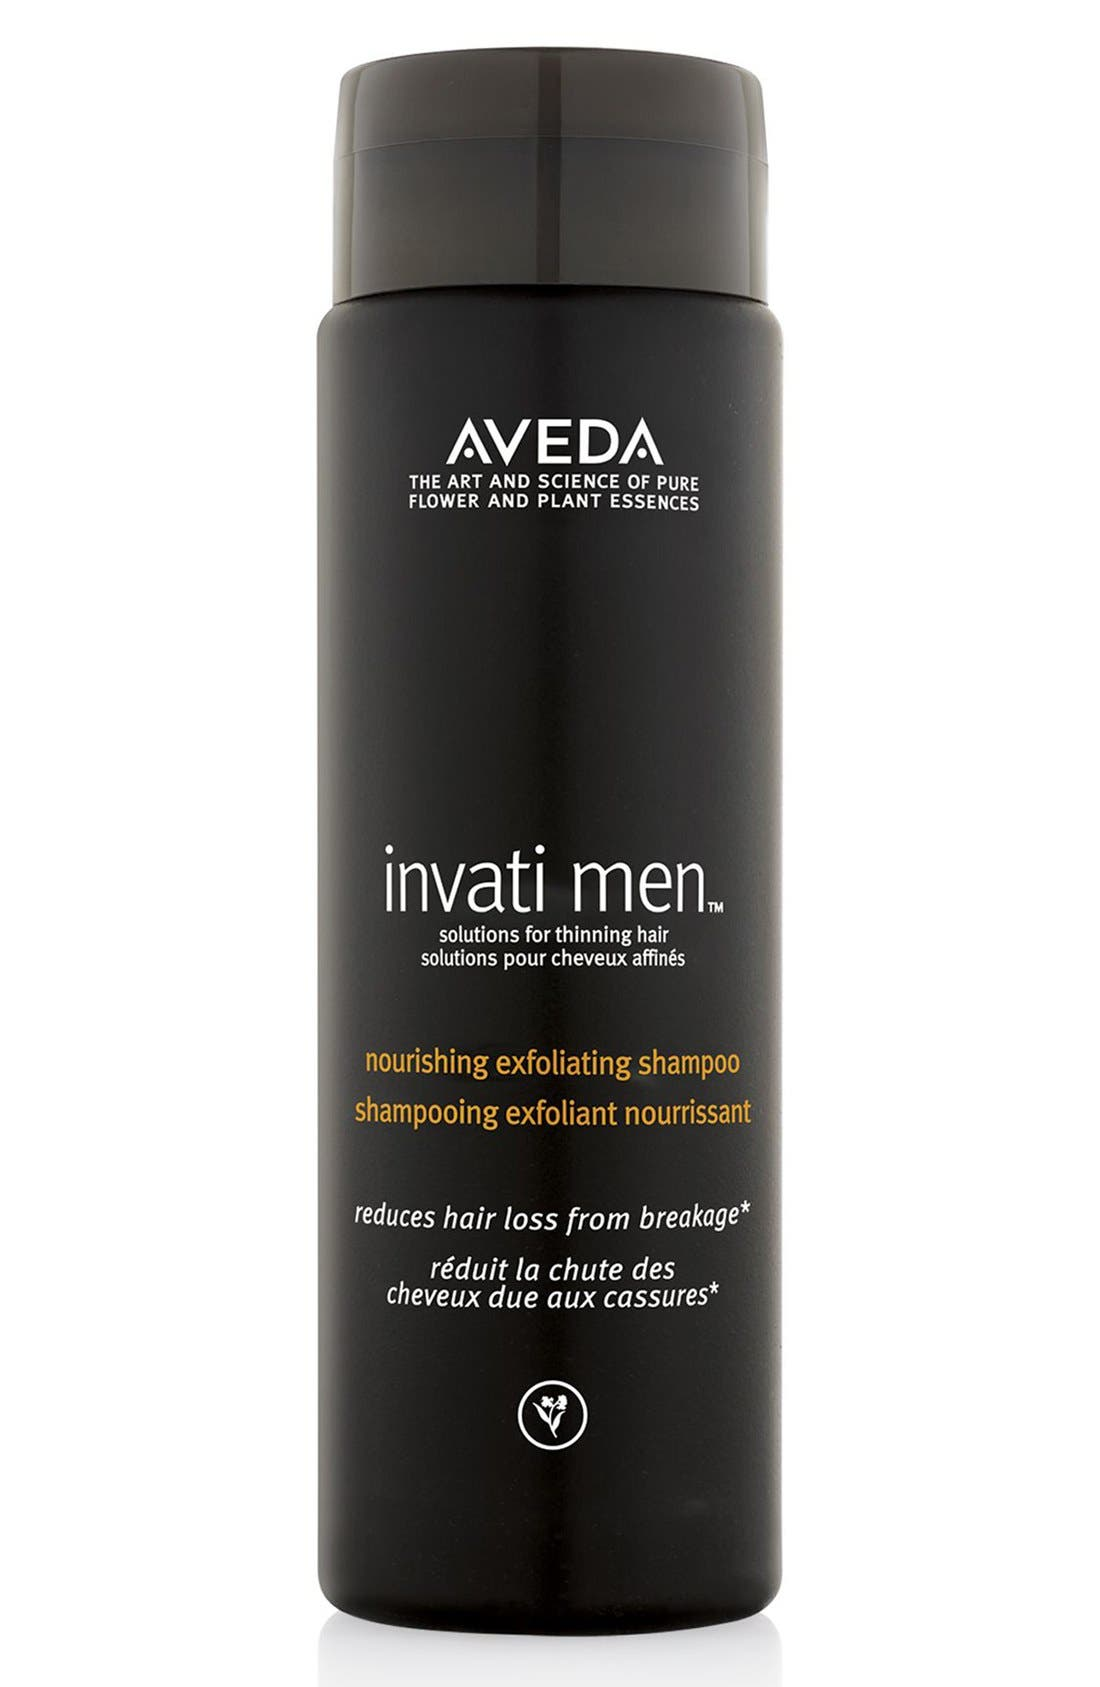 Aveda invati men™ Nourishing Exfoliating Shampoo